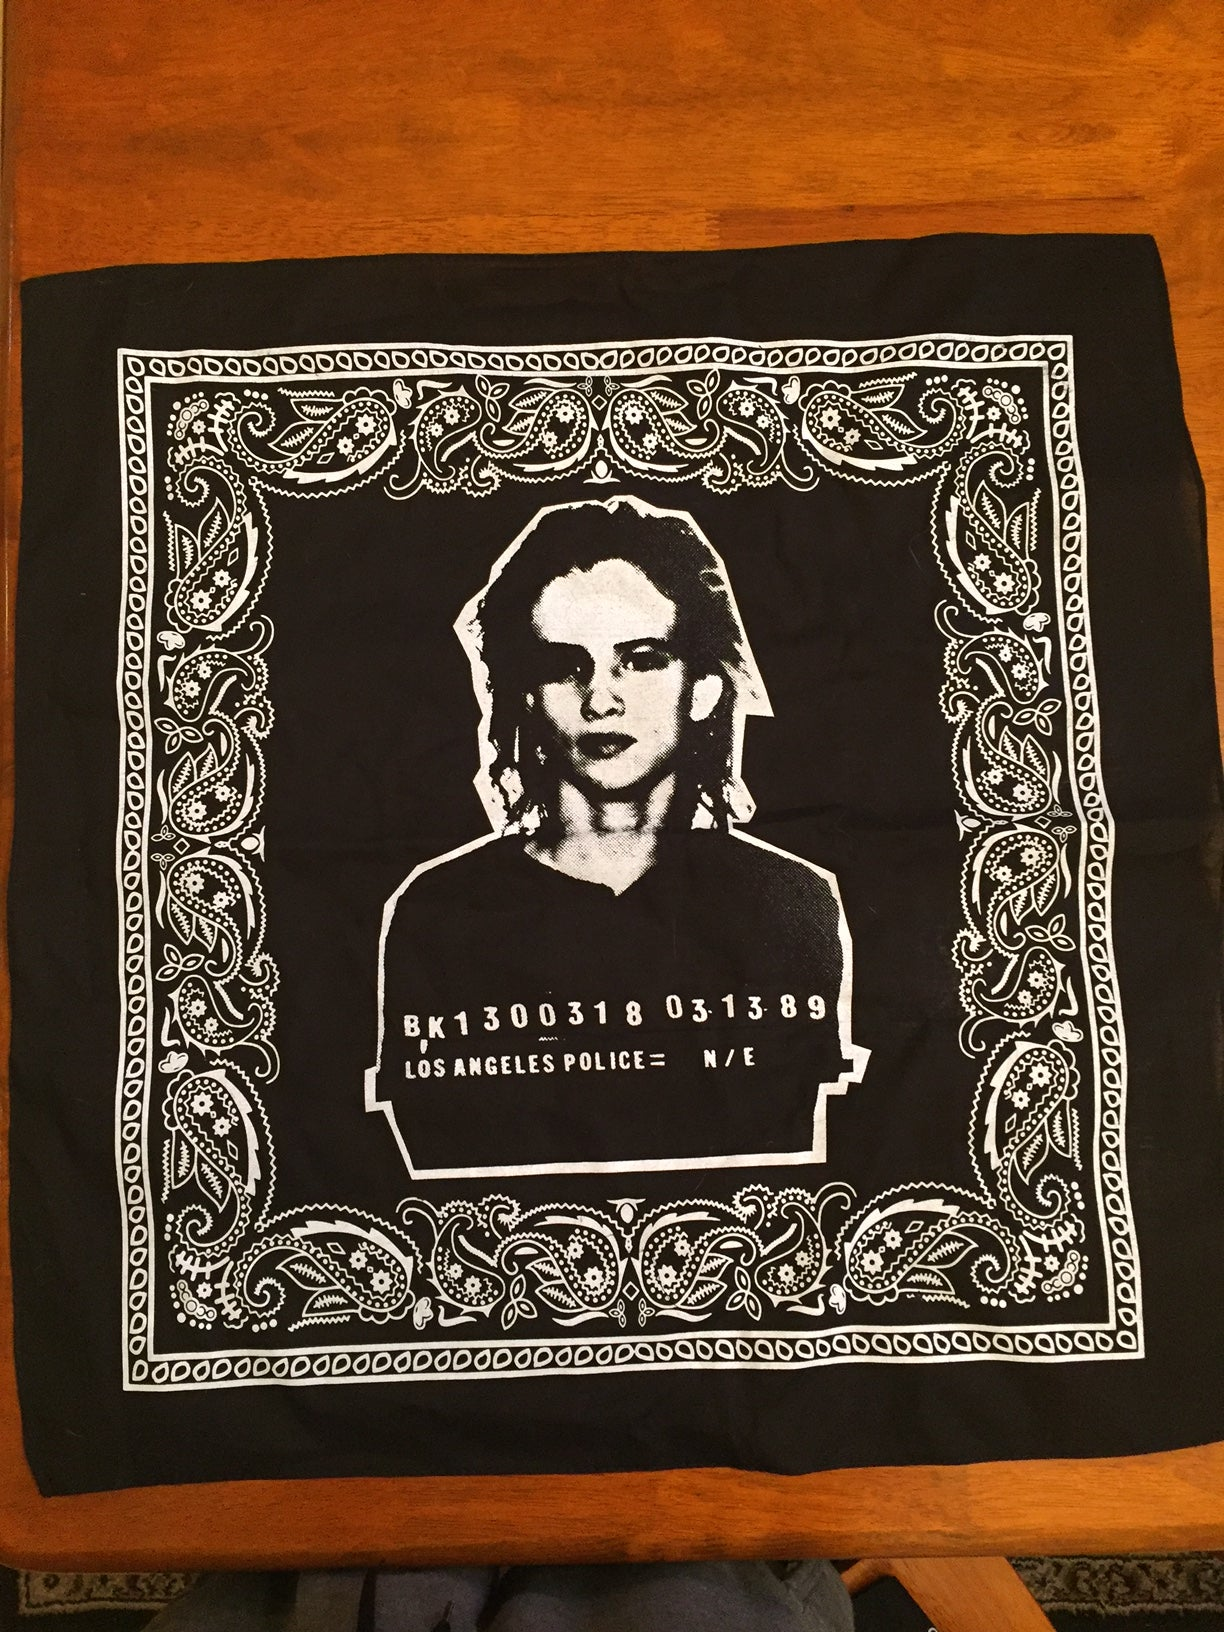 Image of Mug Shot bandana